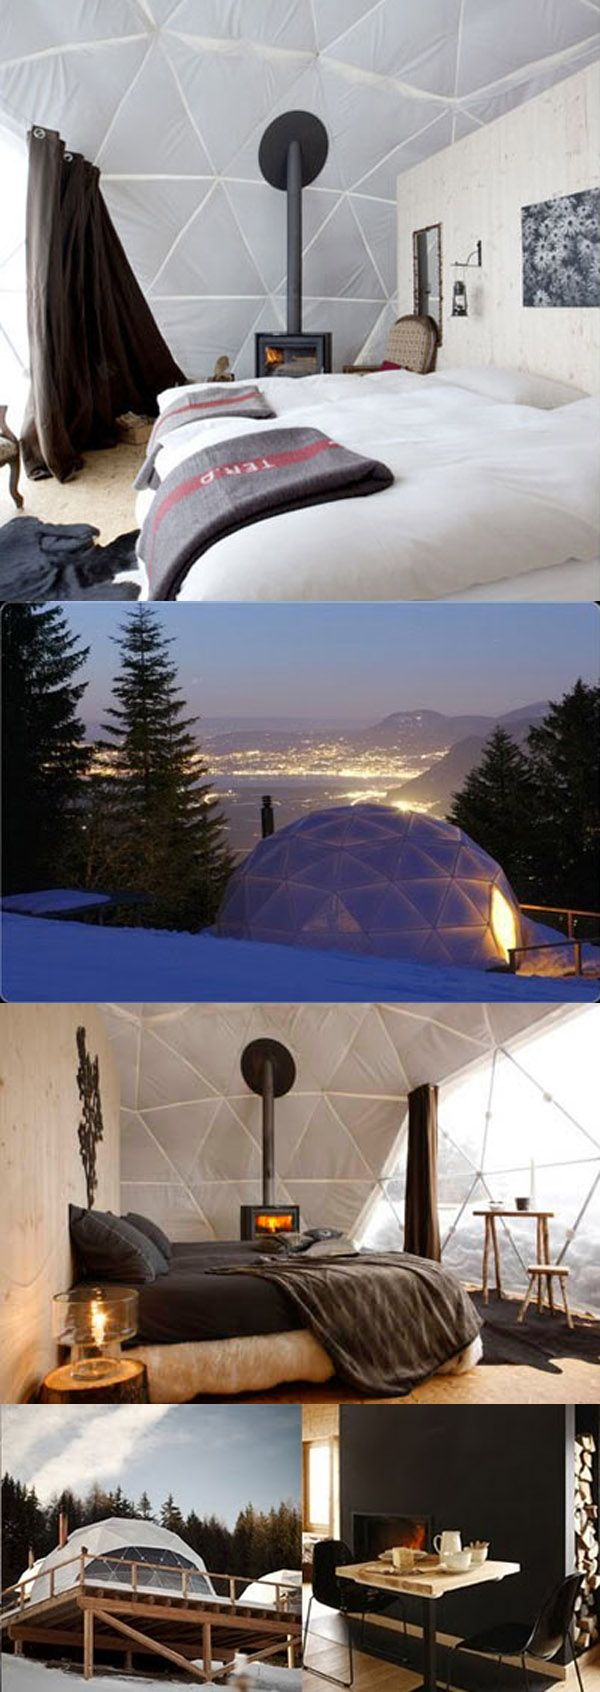 le whitepod resort dans les alpes suisses des chambres igloo tr s design lieux h tels. Black Bedroom Furniture Sets. Home Design Ideas